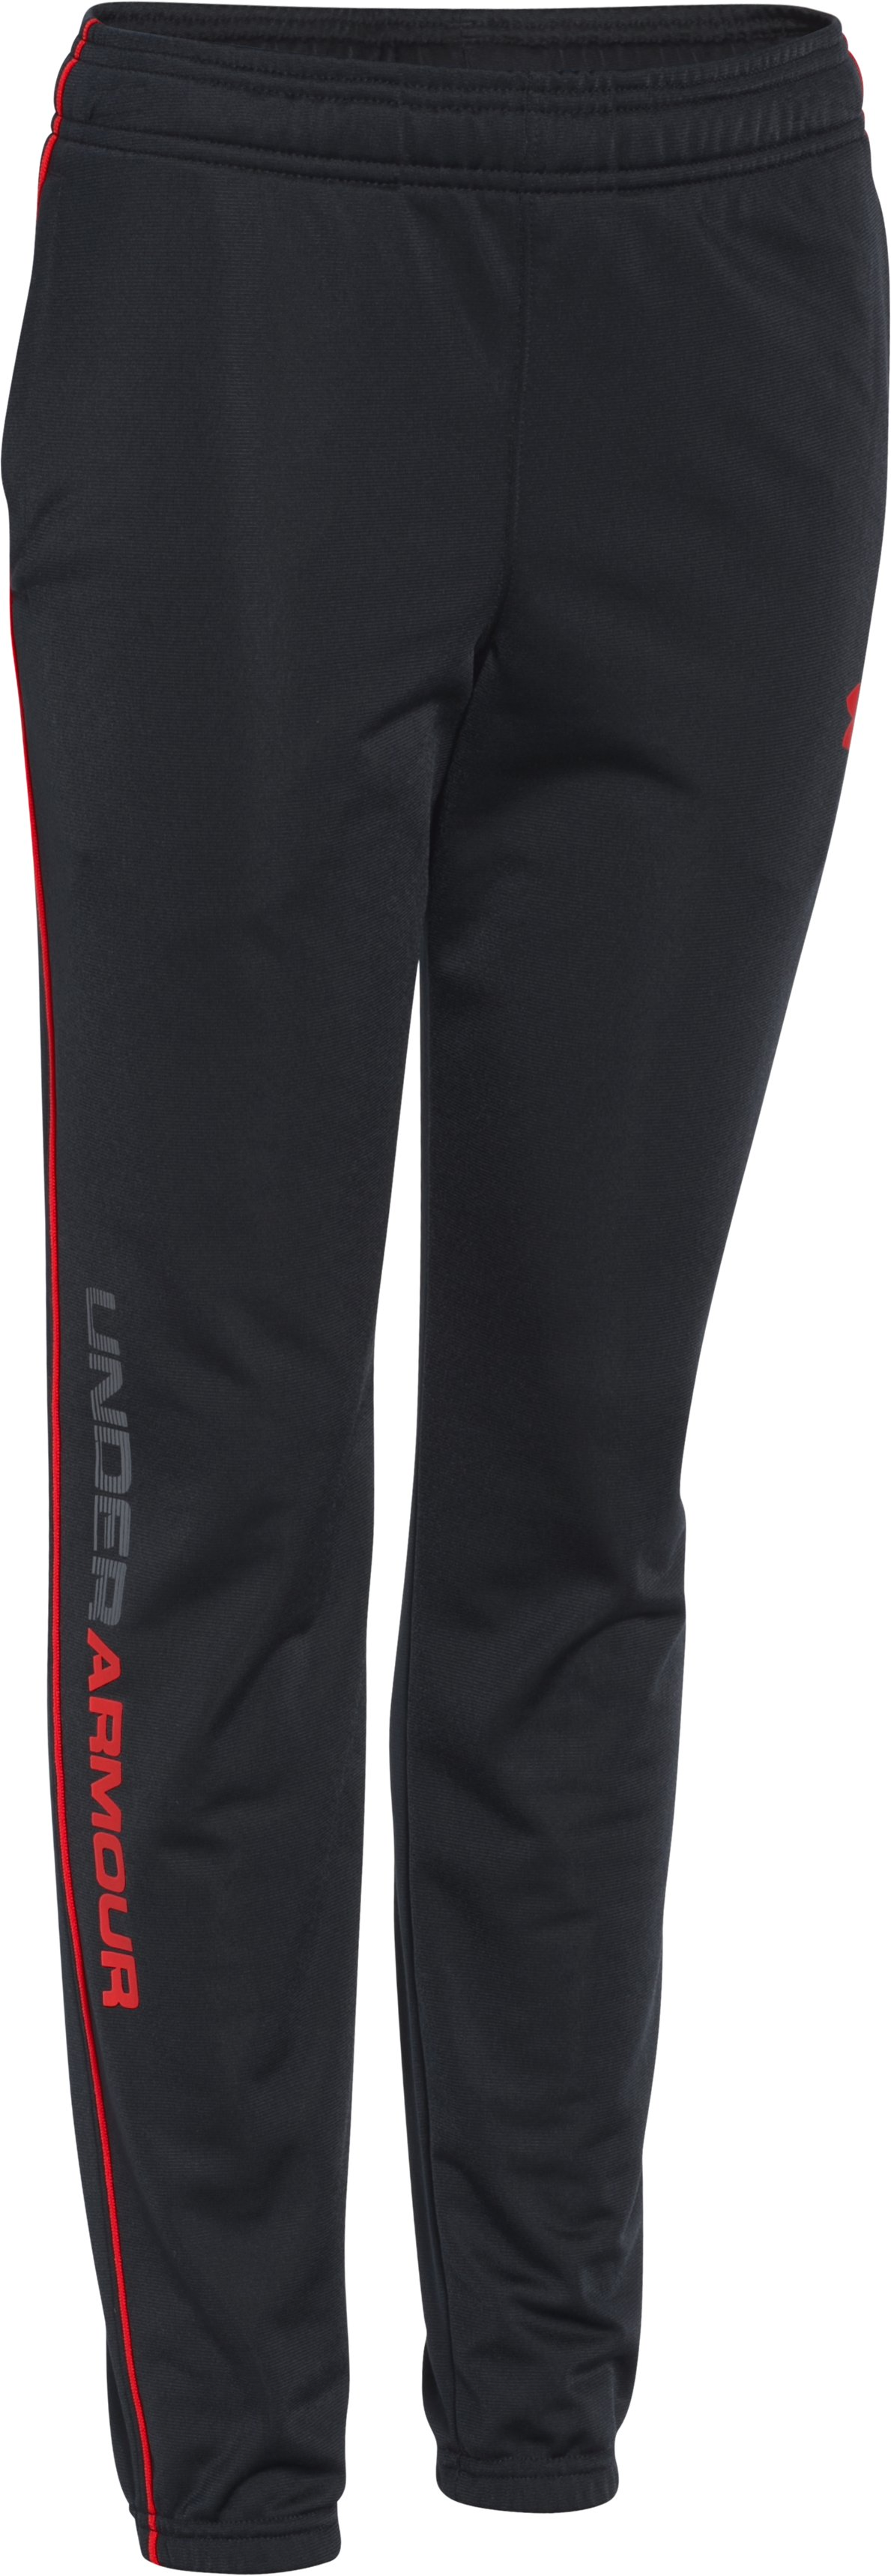 Boys' UA Contender Tapered Warm-Up Pants, Black ,